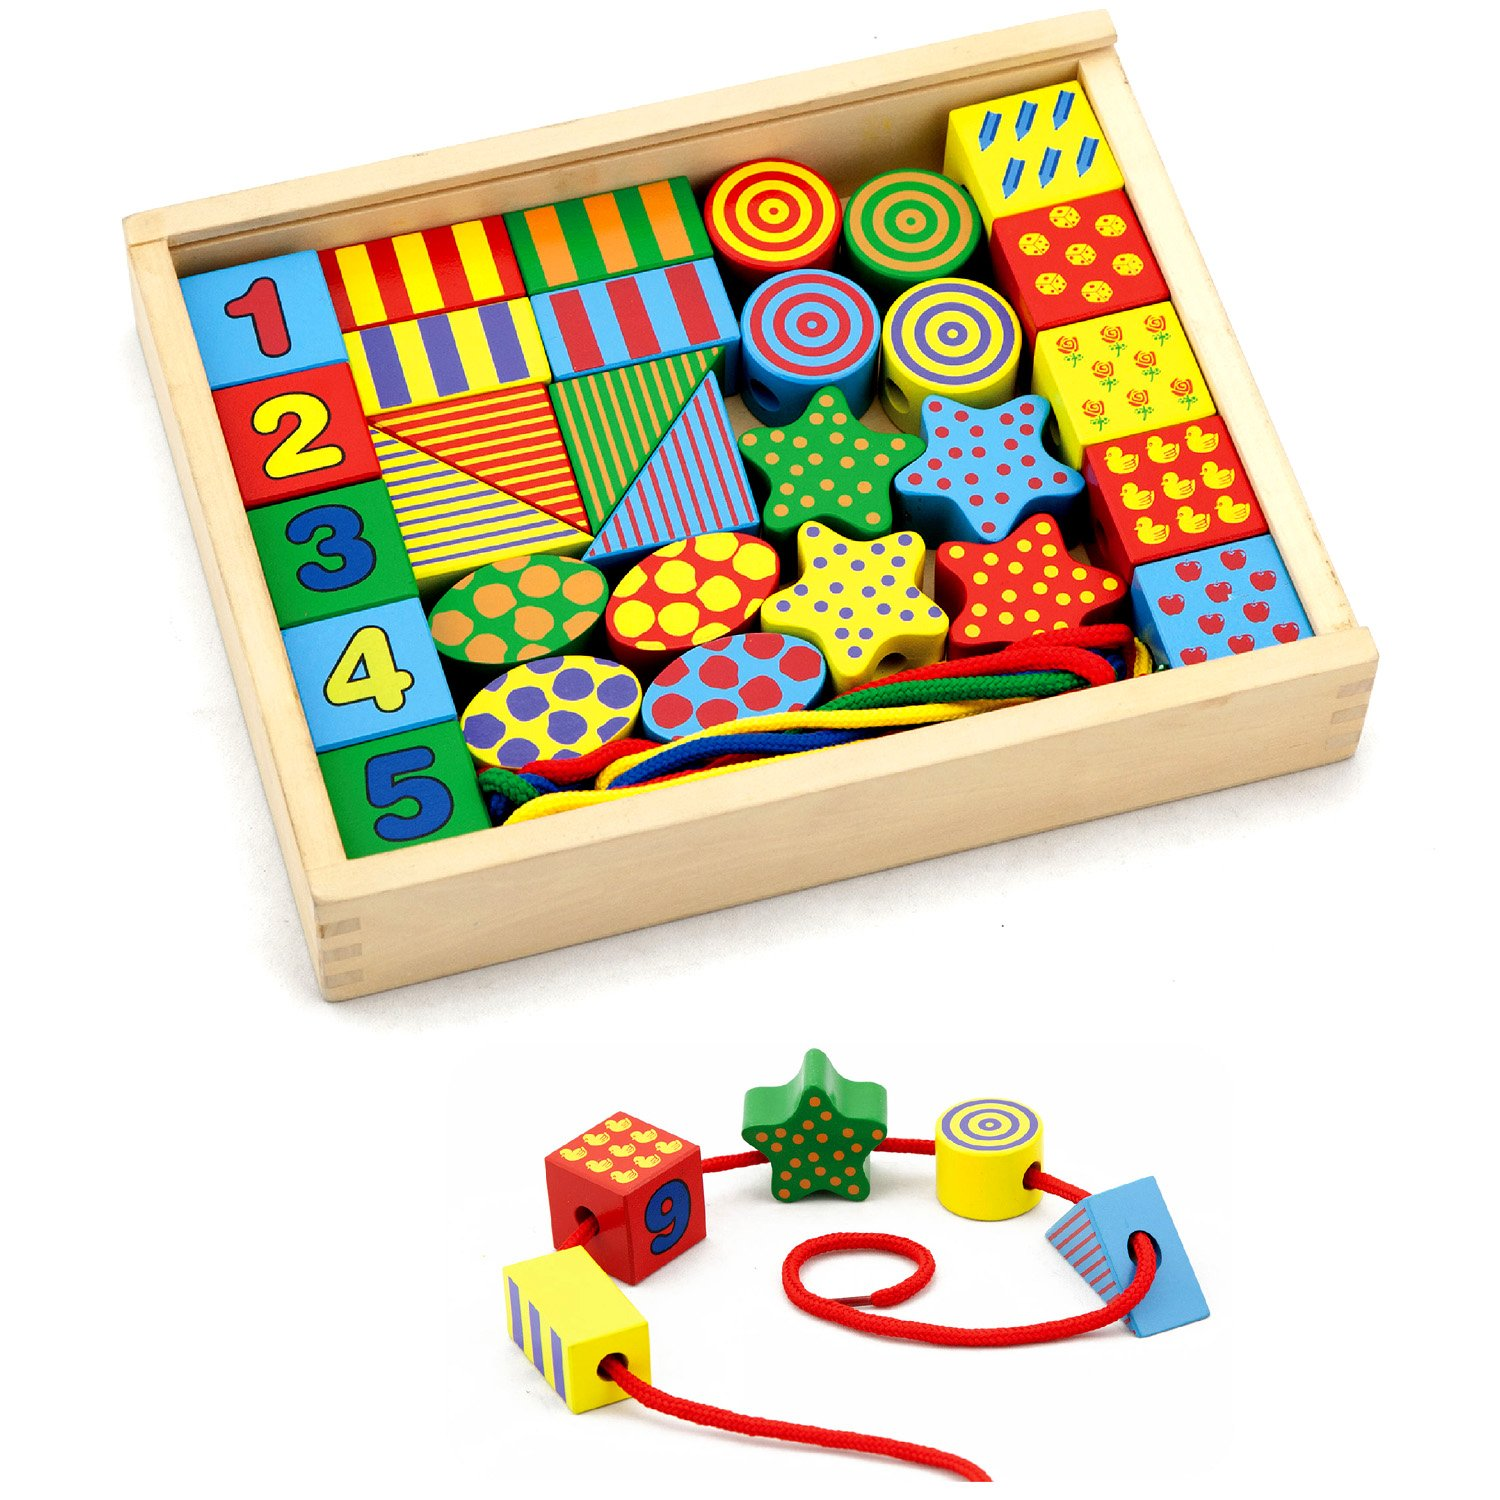 Wooden Lacing Blocks Set Amazon Toys & Games